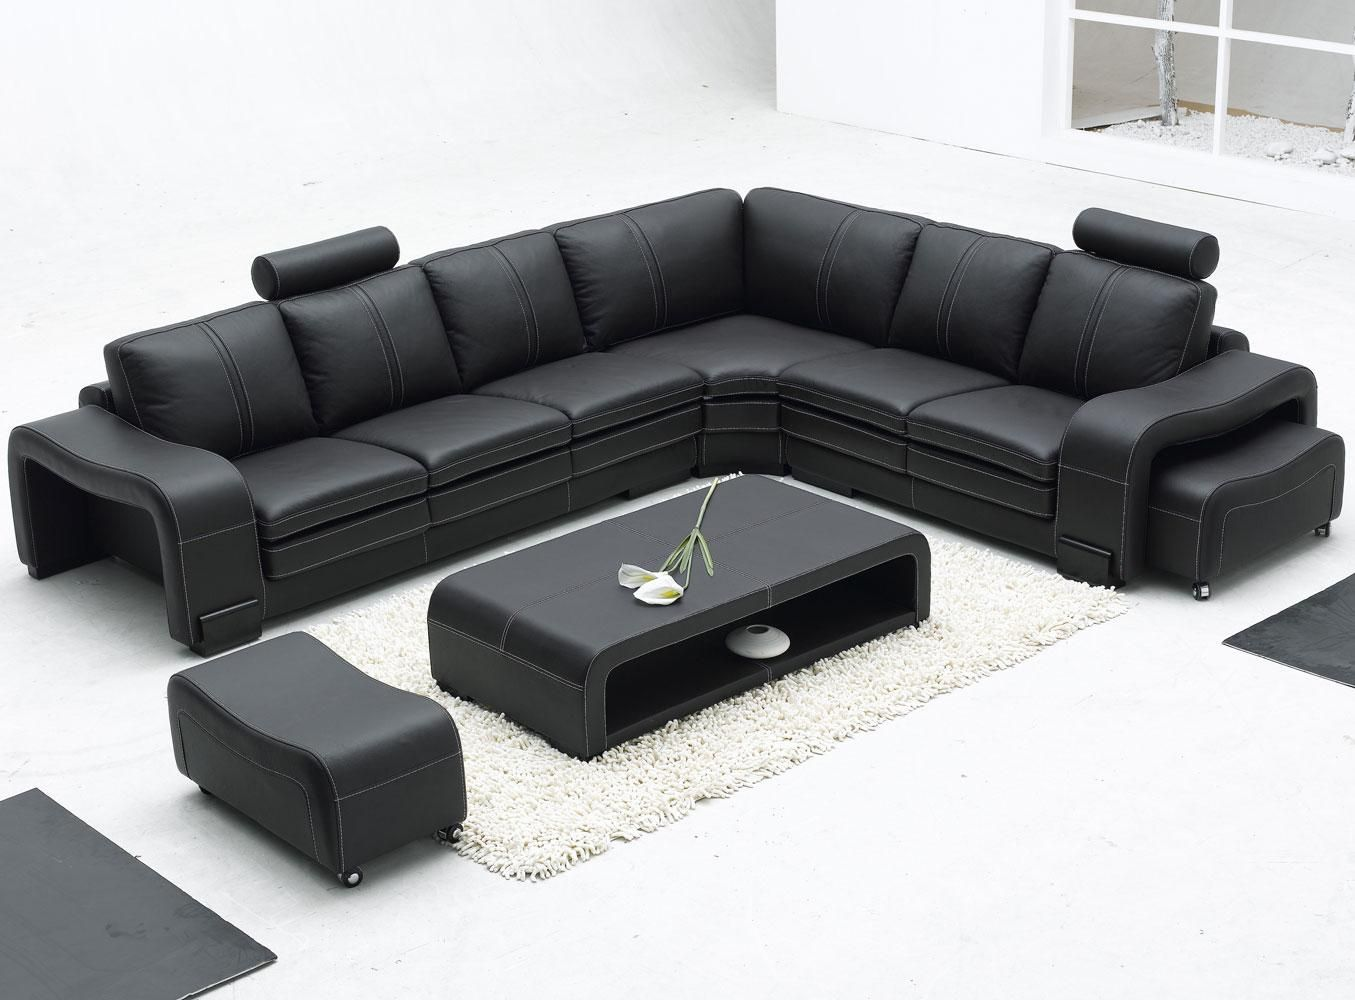 Awesome Sectional Leather Sofa New Sectional Leather Sofa 56 For